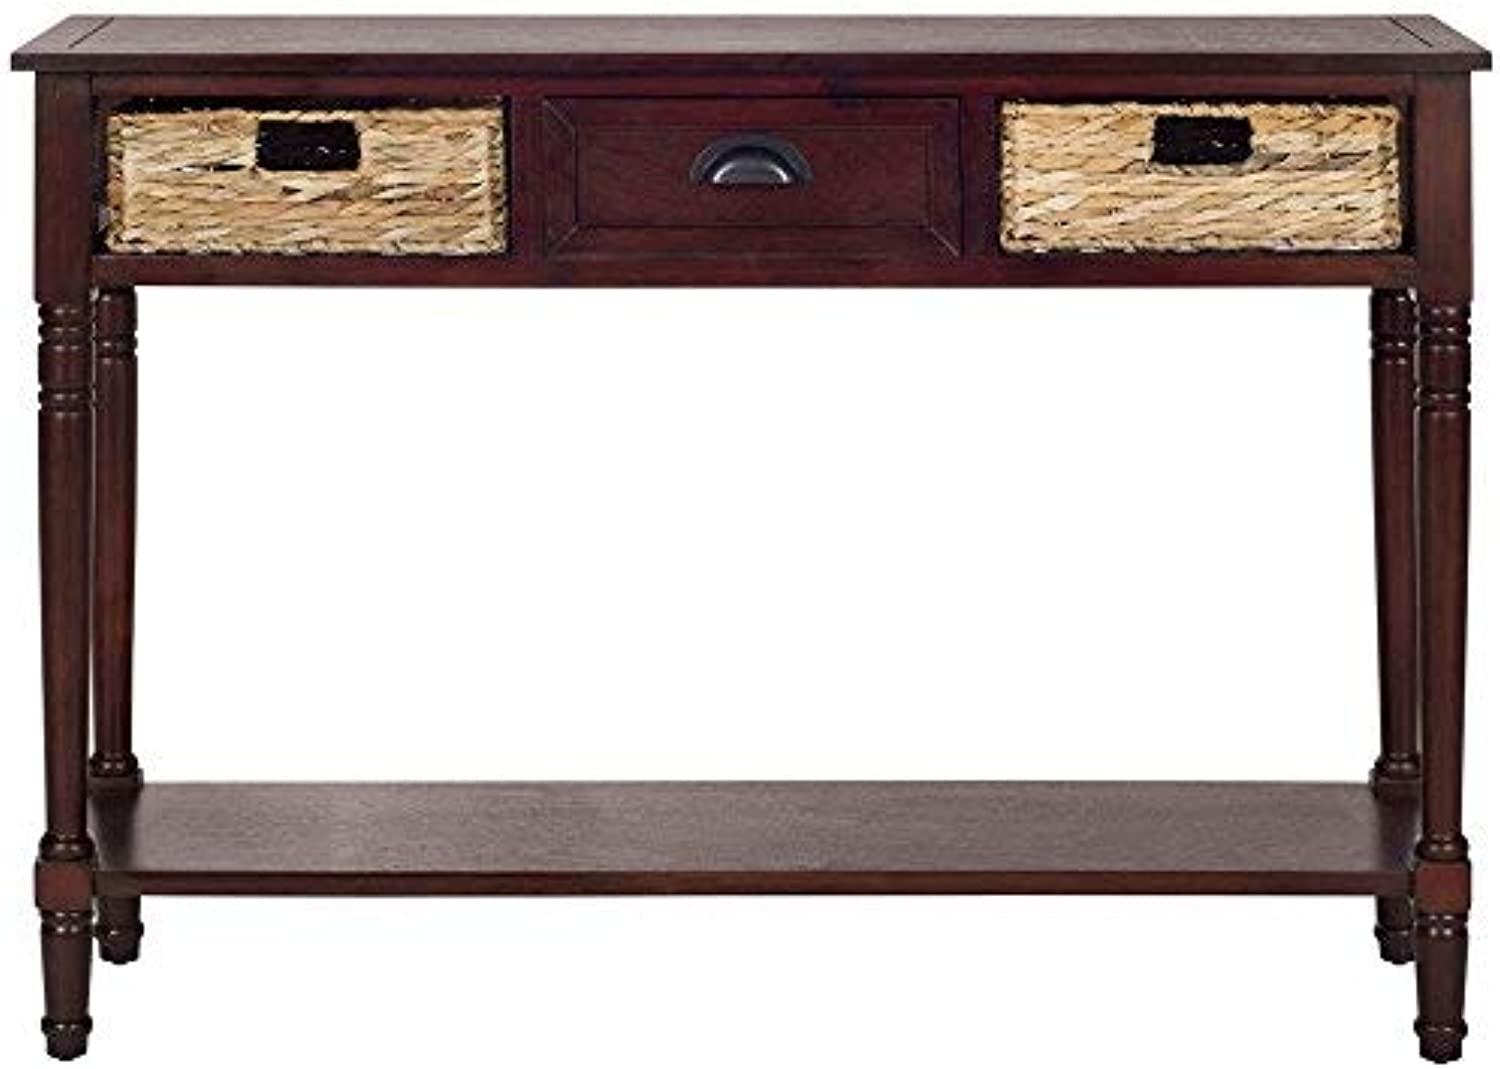 Safavieh AMH5737C American Homes Collection Console Table with Storage, Christa Cherry